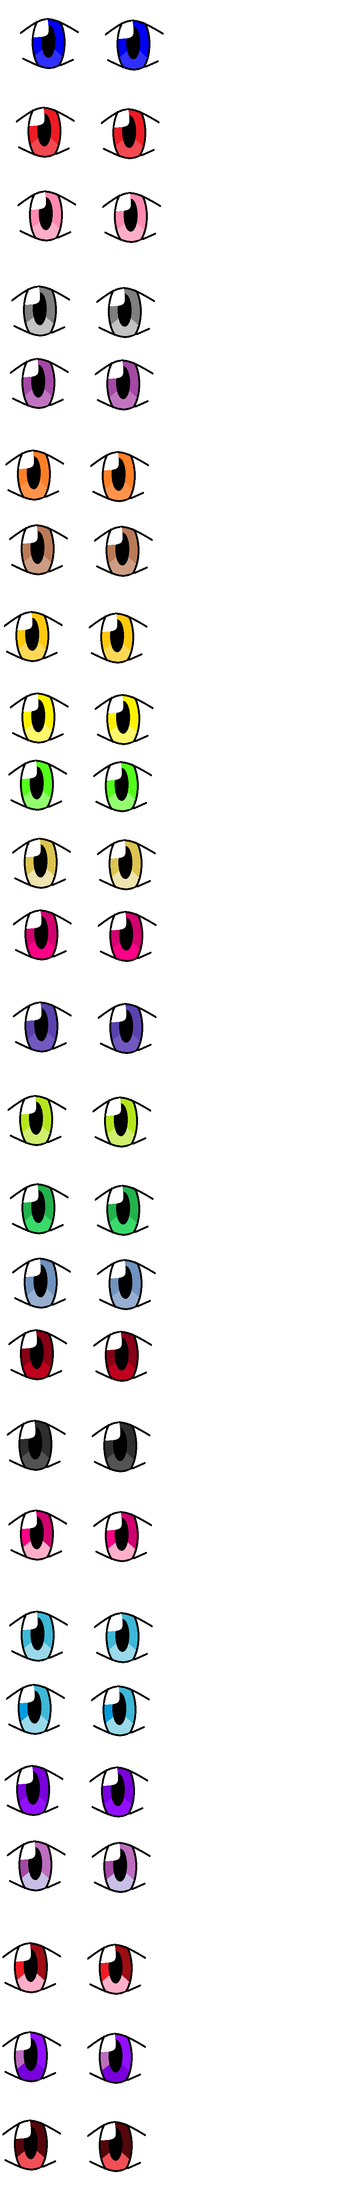 So much eyes!!!!! 0_o by FluttershyWarrior123